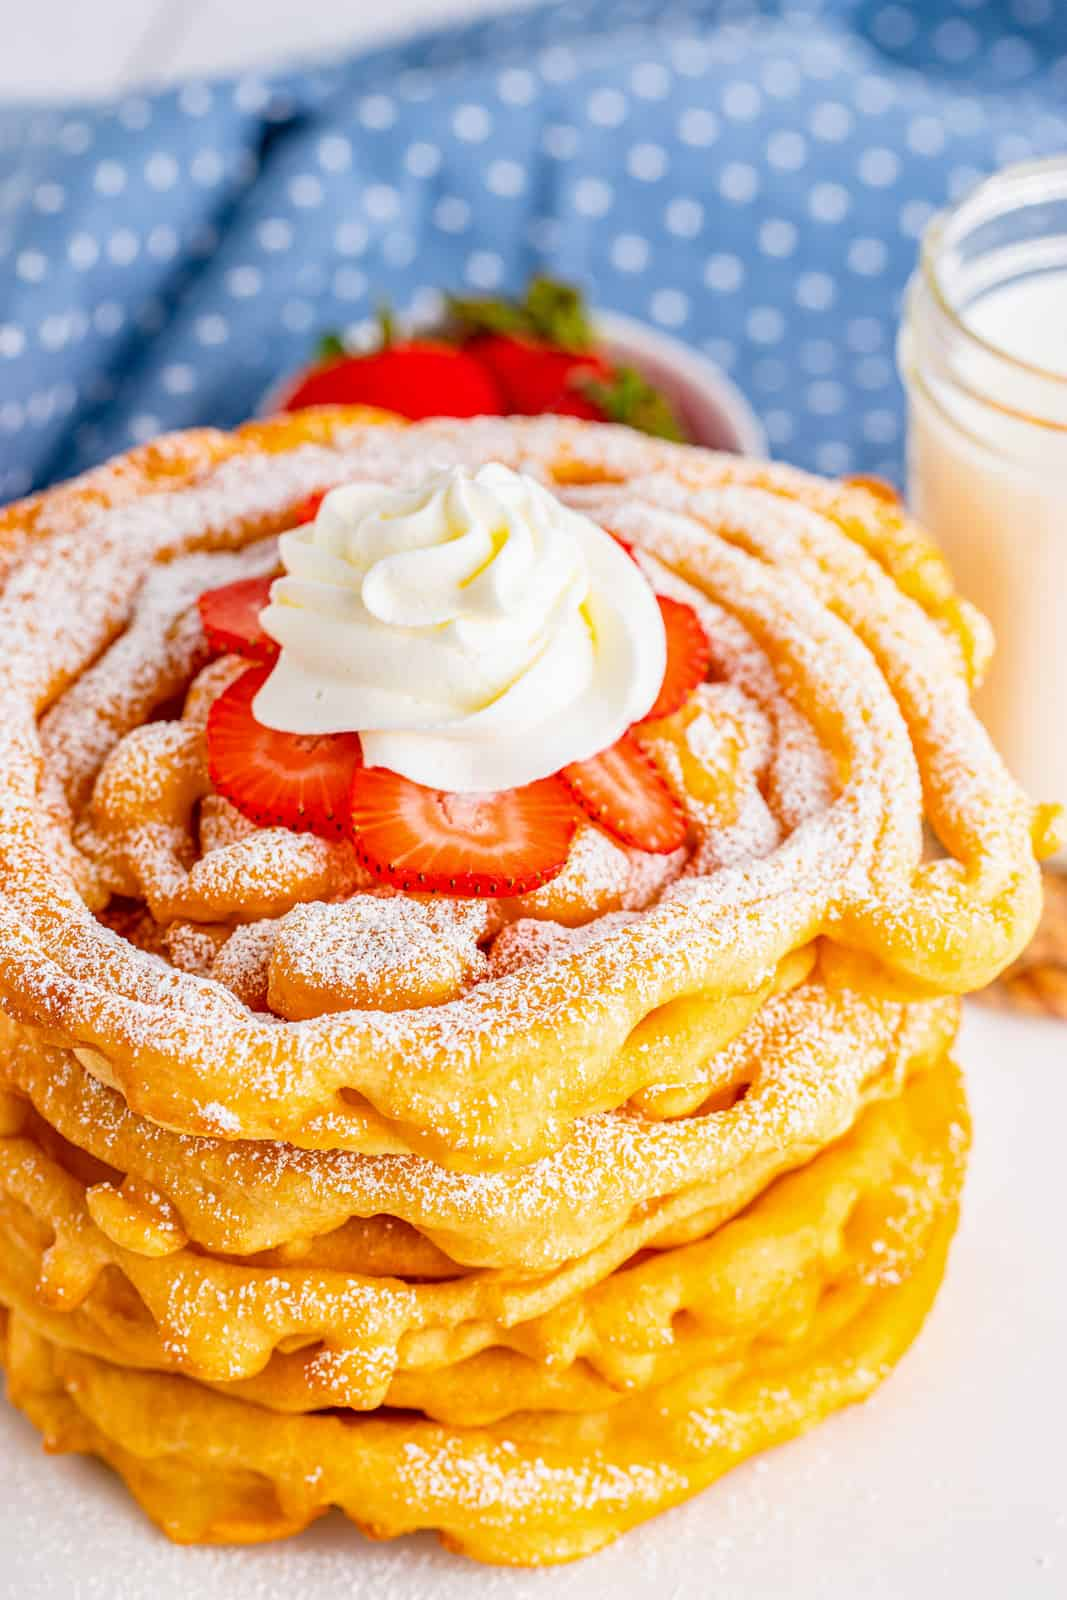 Stacked Funnel Cake Recipe showing top funnel cake topped with Strawberries, powdered sugar and whipped cream